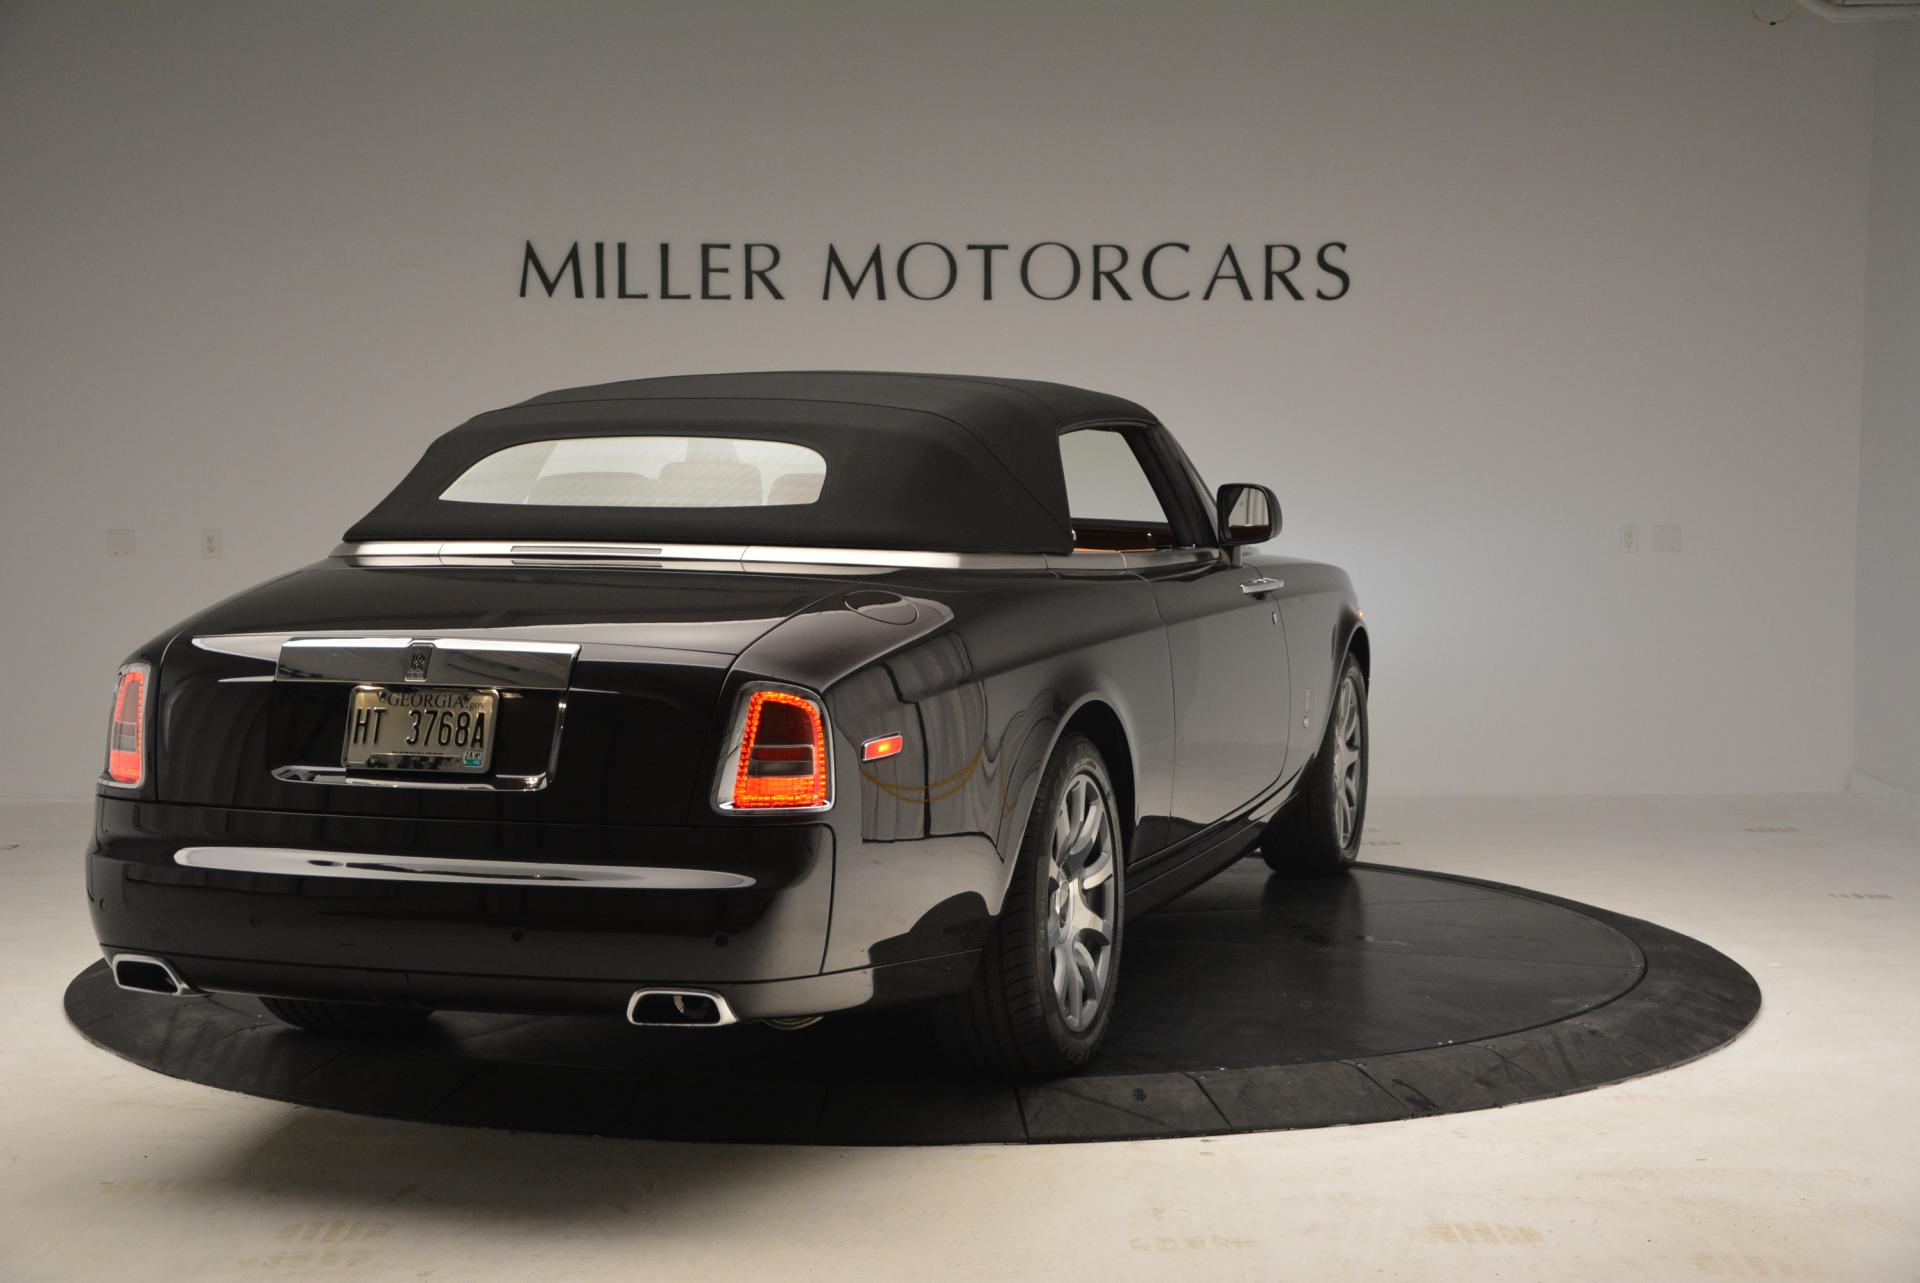 New 2016 Rolls-Royce Phantom Drophead Coupe Bespoke For Sale In Greenwich, CT 208_p17